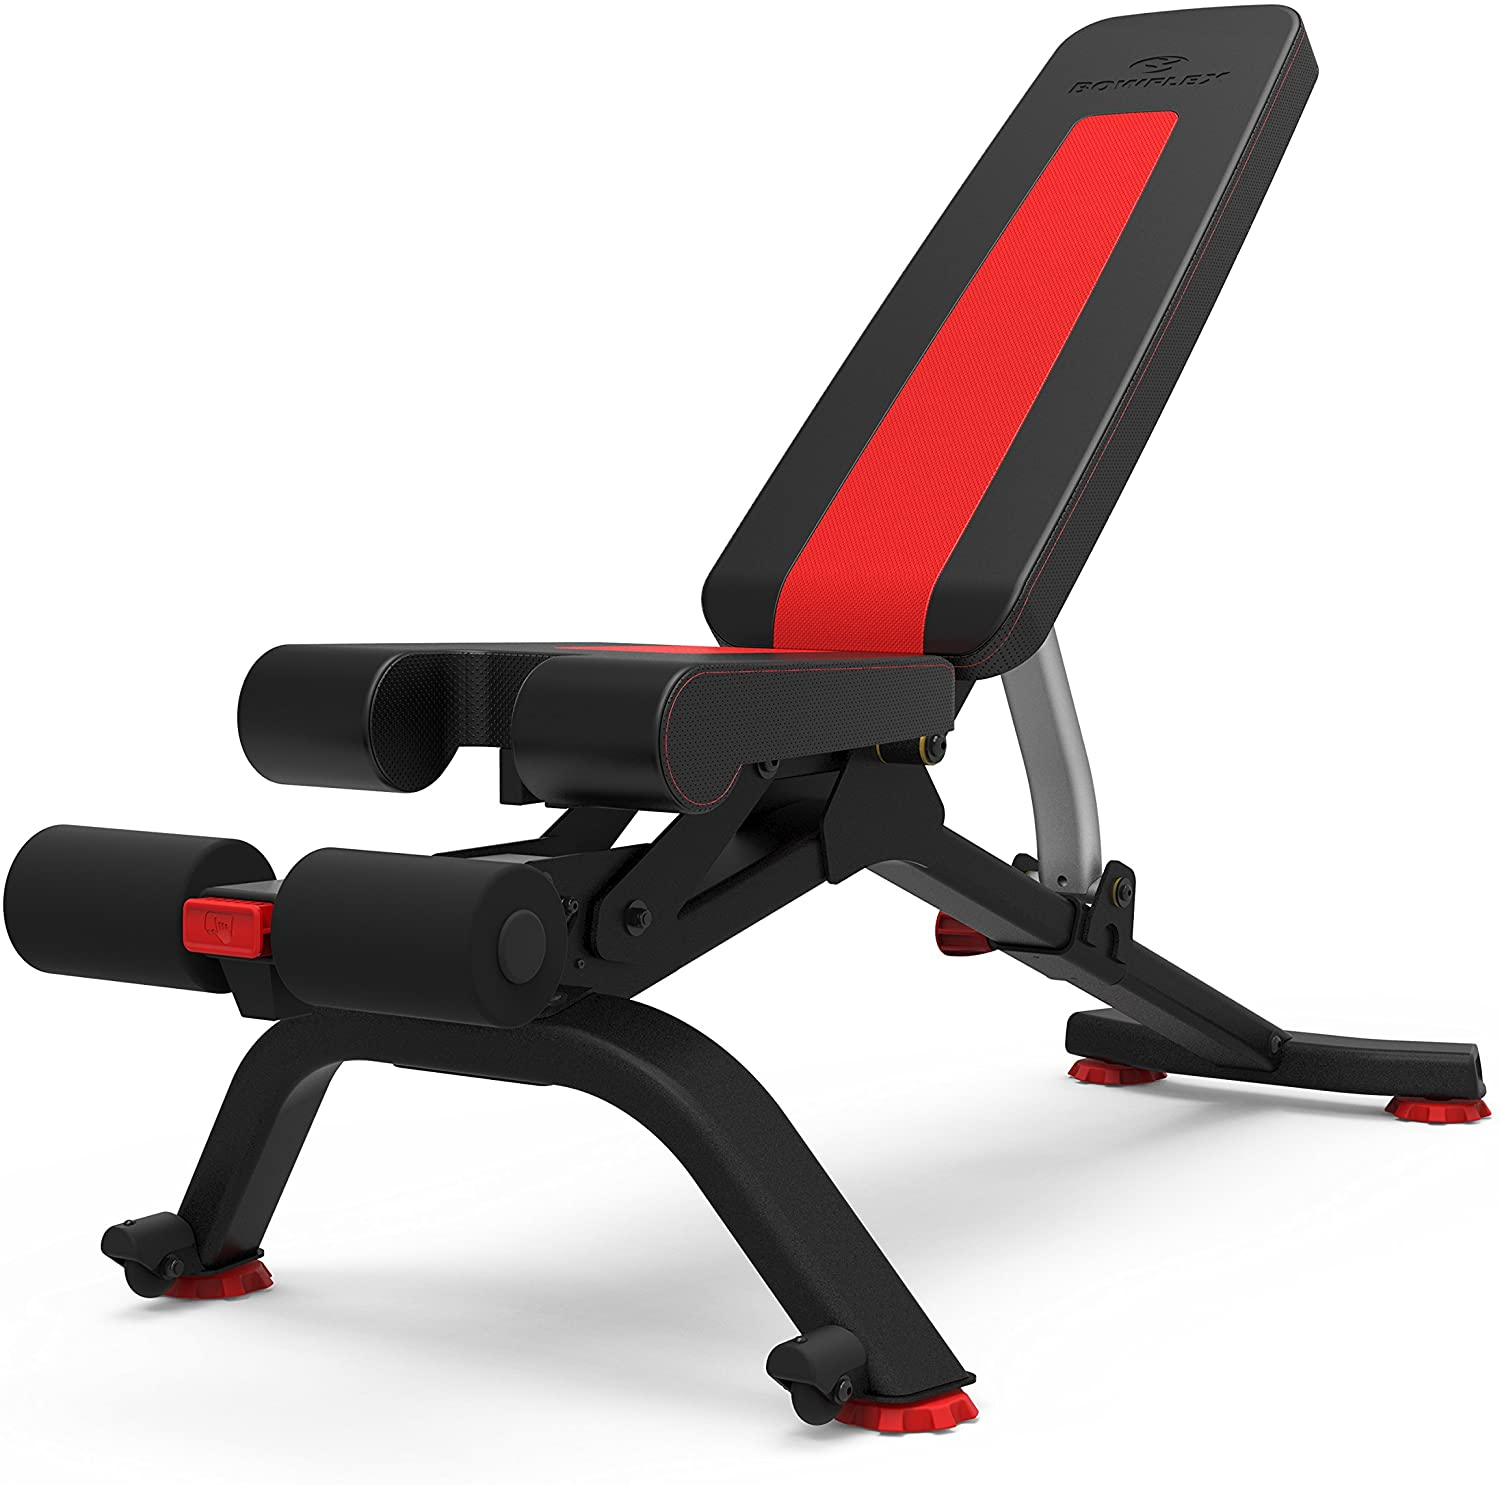 Bowflex SelectTech Adjustable home weight bench